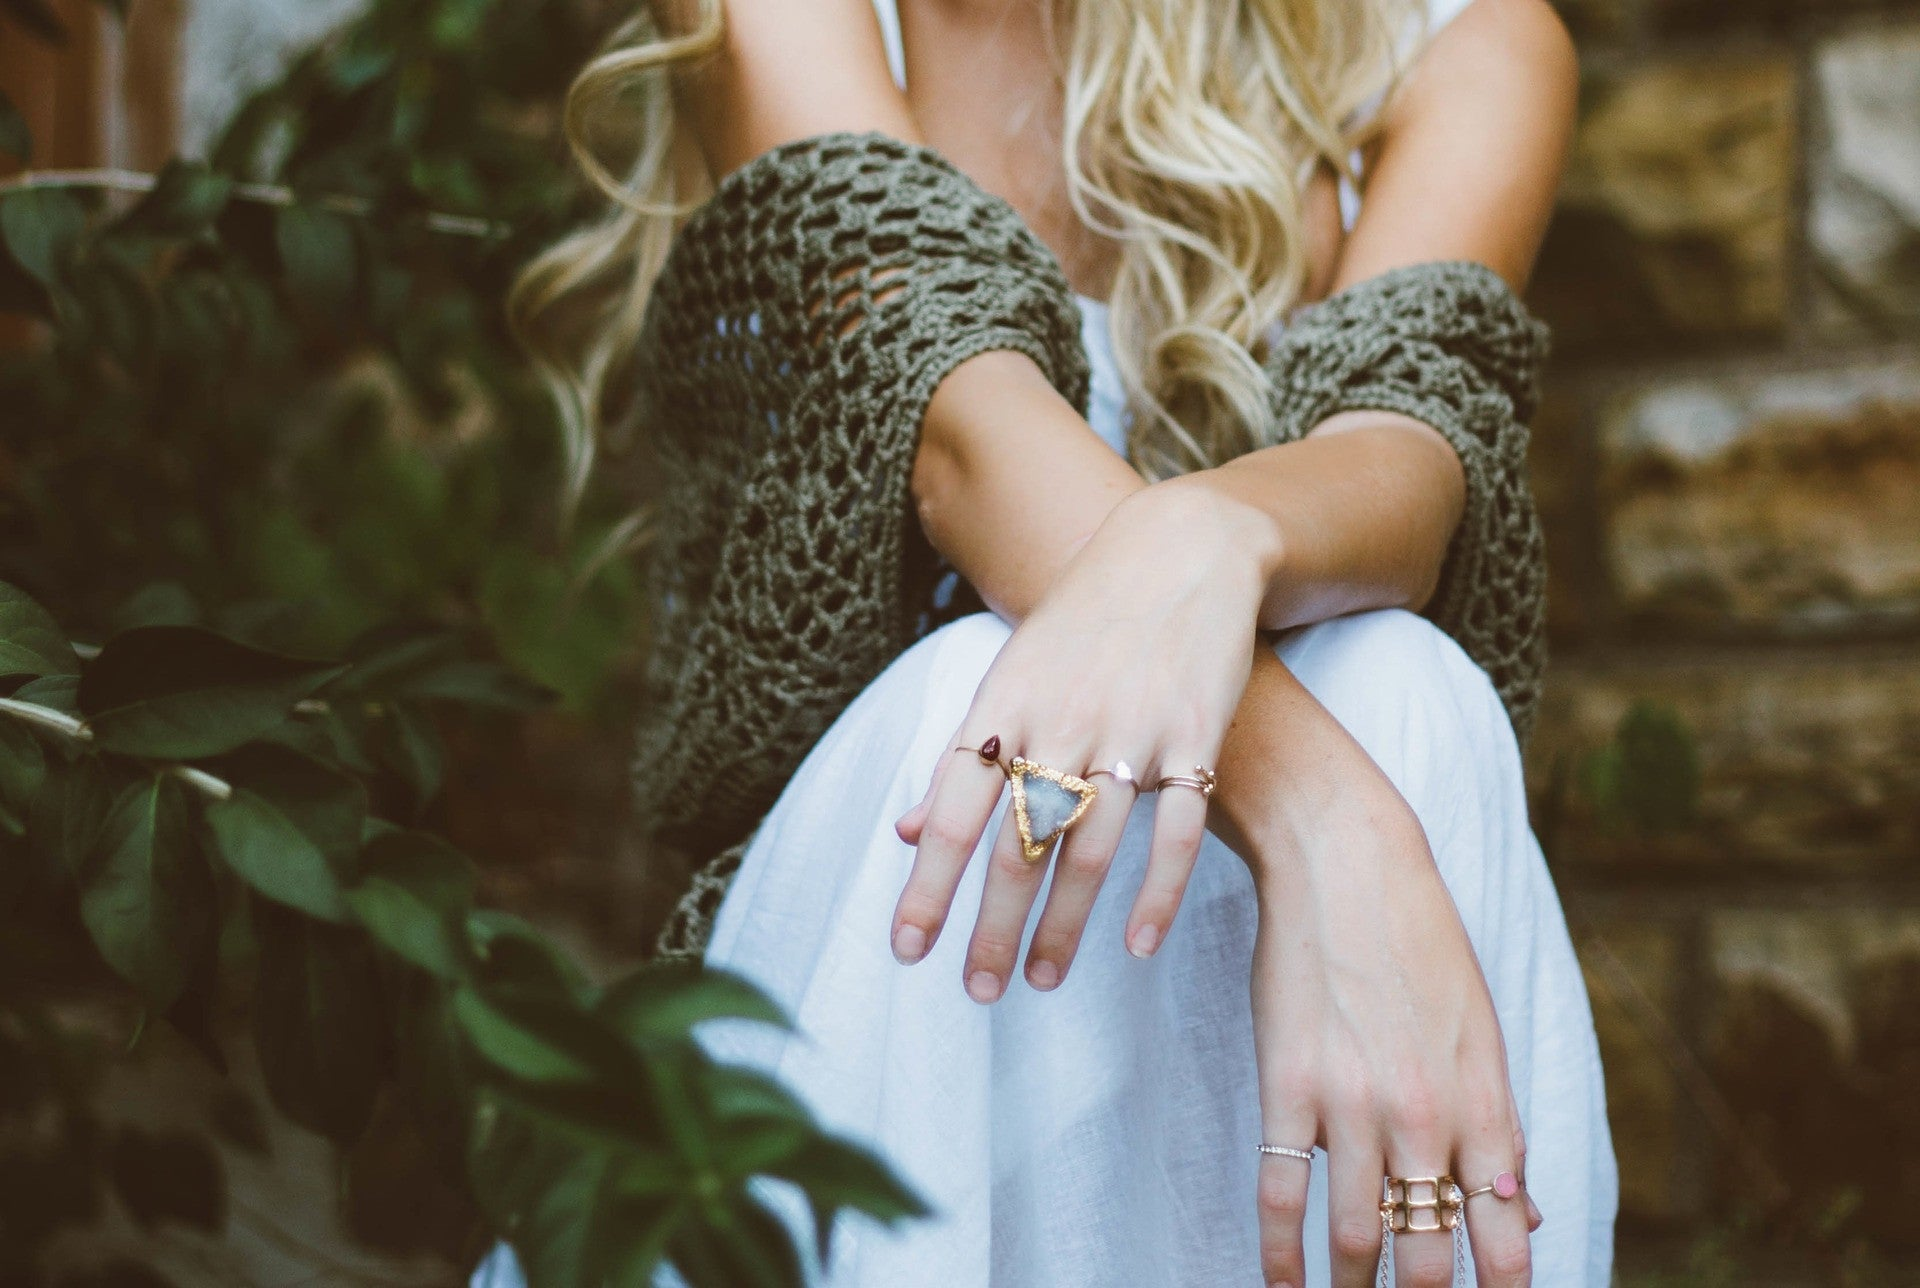 Stop Wearing the Same Jewelry: Be Unique!